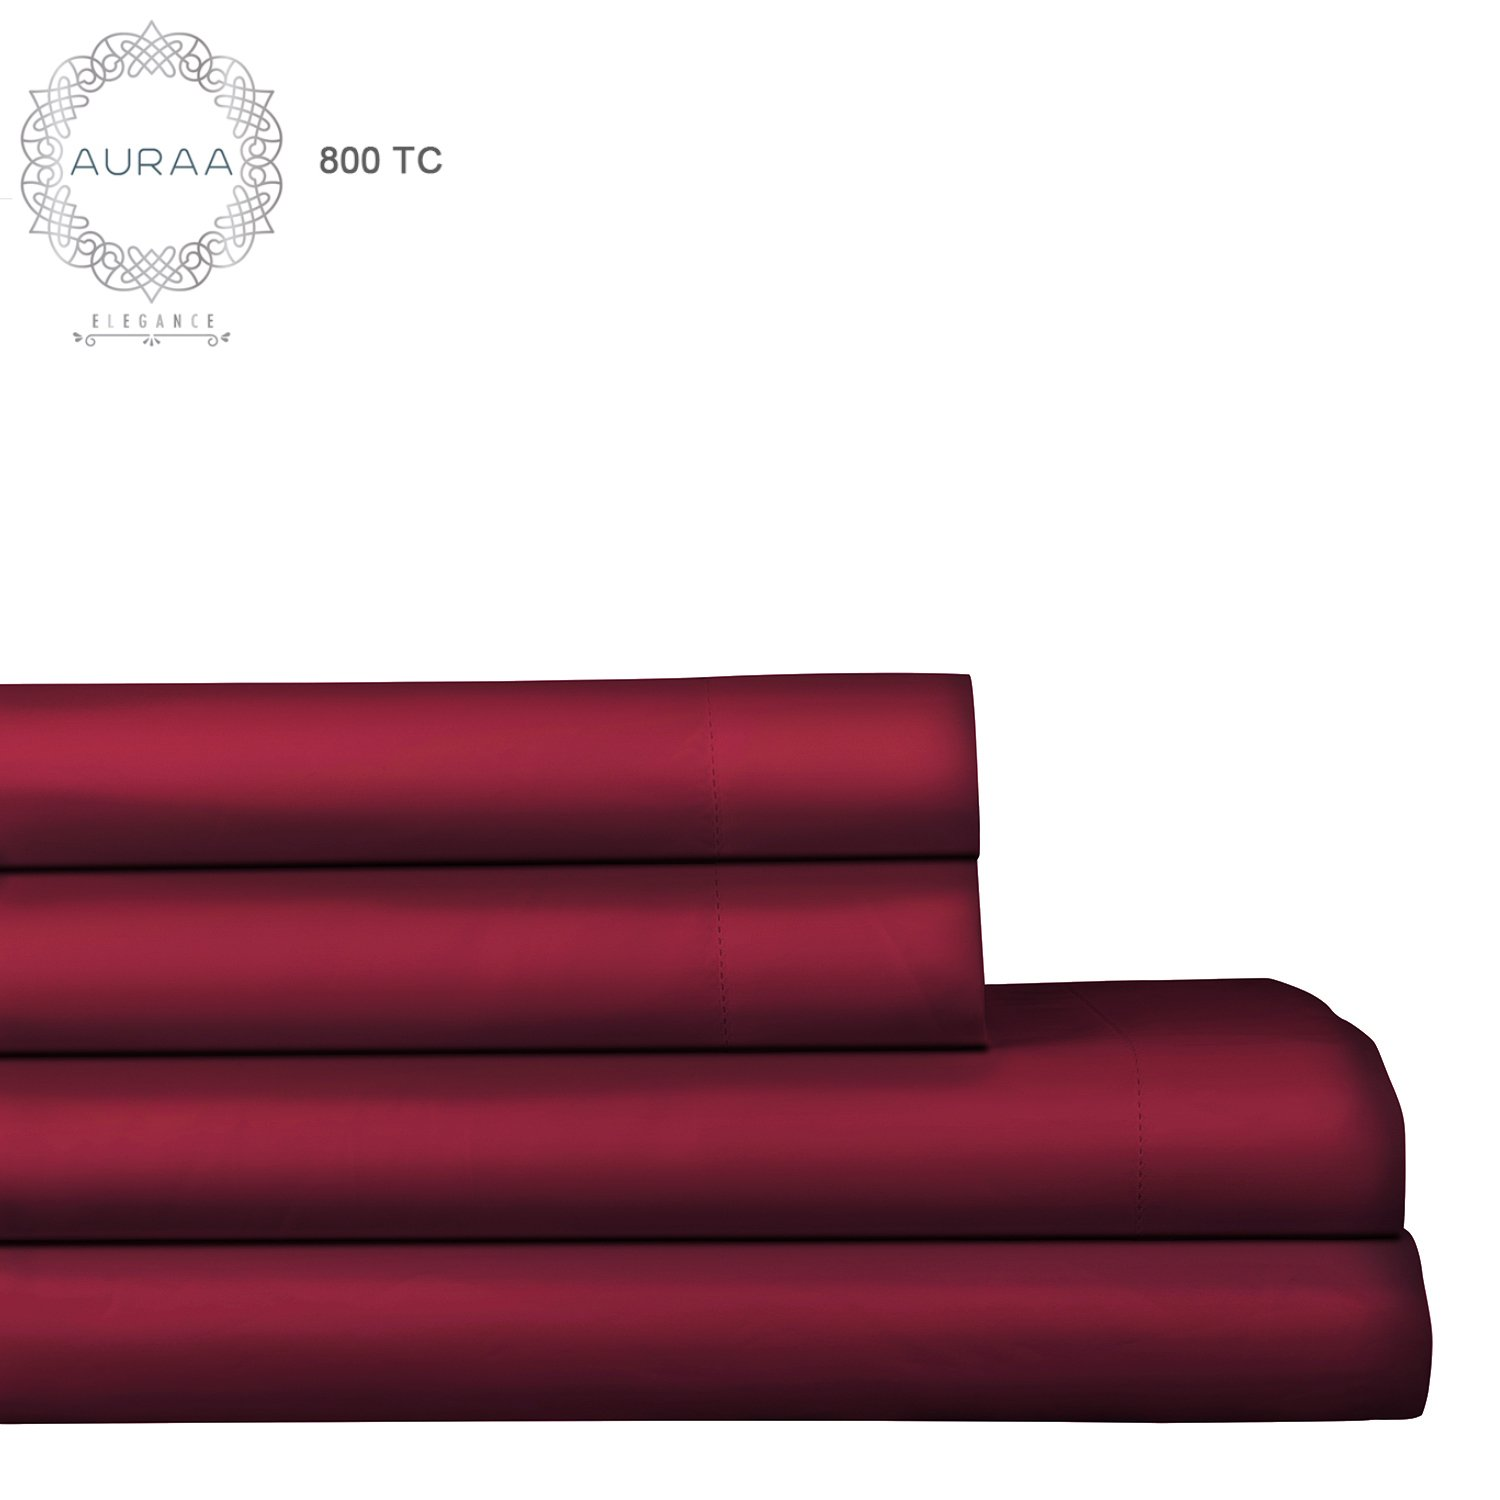 AURAA Elegance 800 Thread Count 100% American Supima Long Staple Cotton Sheet Set,4 Pc Set, Queen Sheets Sateen Weave,Hotel Collection Luxury Bedding,Fits Upto 18'' Deep Pocket,Burgundy